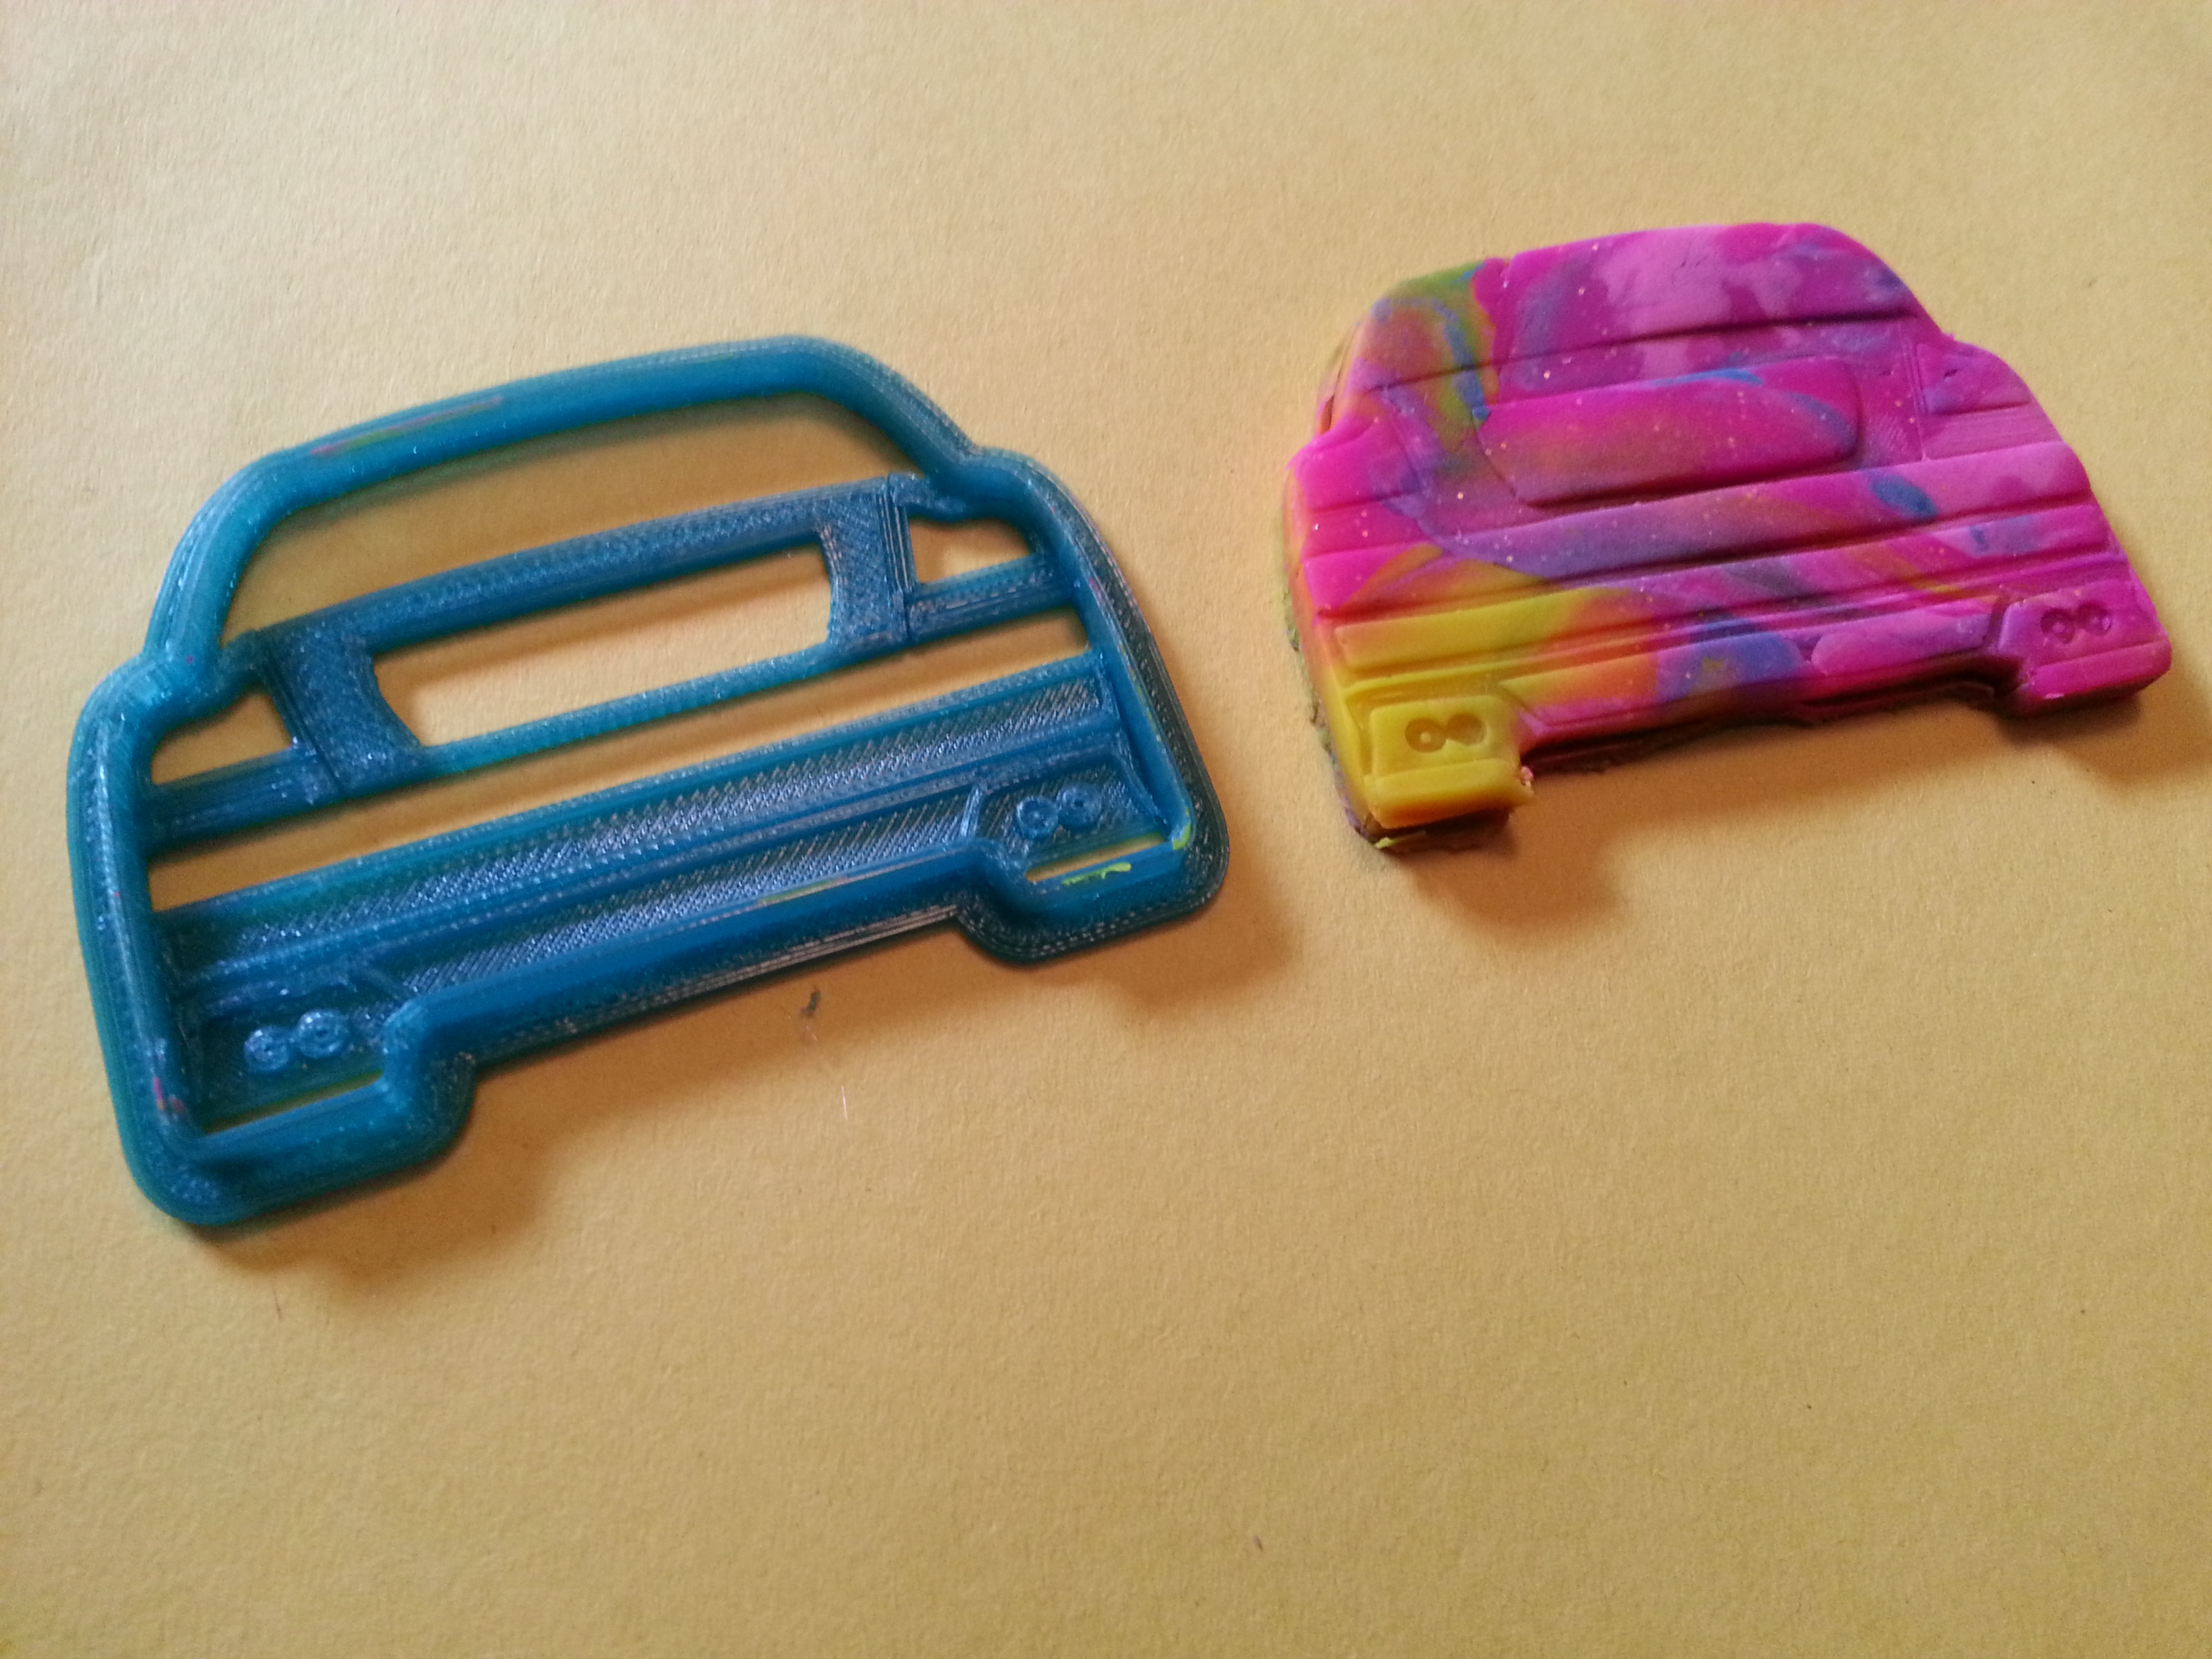 Fun/Project: Volvo S60R Cookie Cutter – 3D Printed